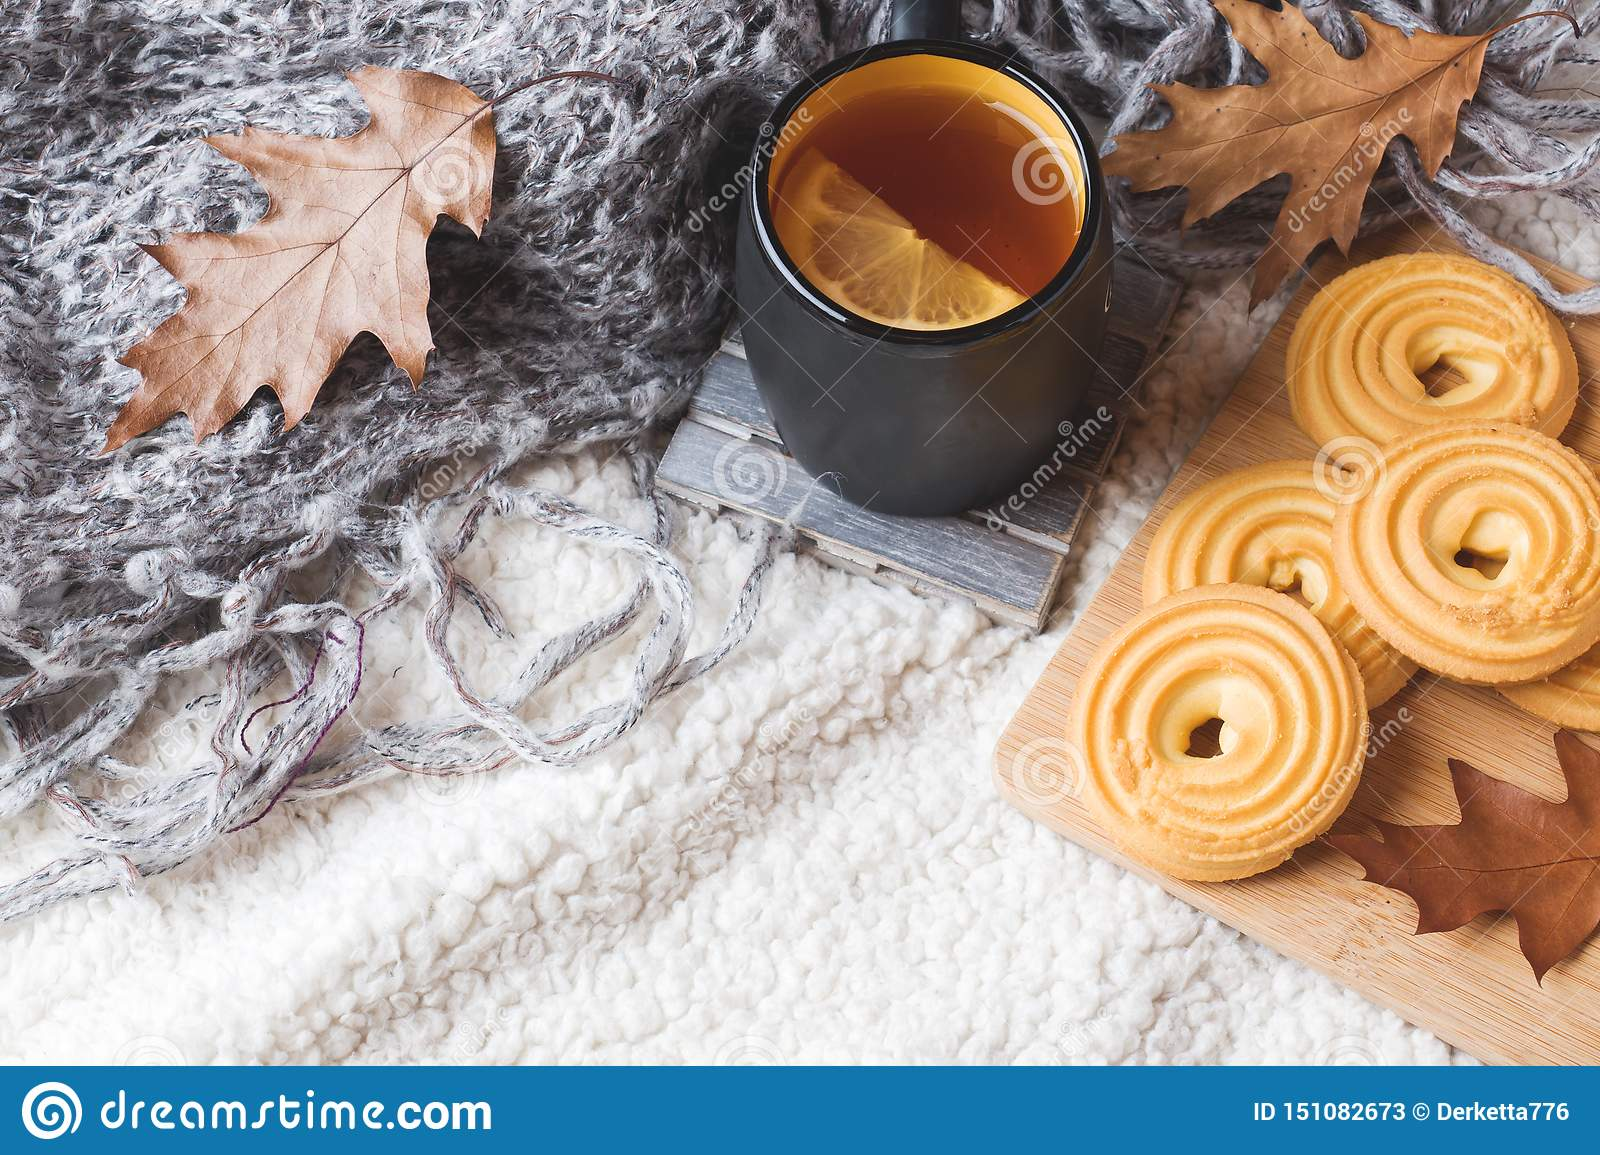 Autumn Still Life With Cup Of Tea Cookies Sweater And Leaves On A Warm Soft Blanket Concept Of Cozy Autumn Fall Season Stock Image Image Of Rustic Nature 151082673